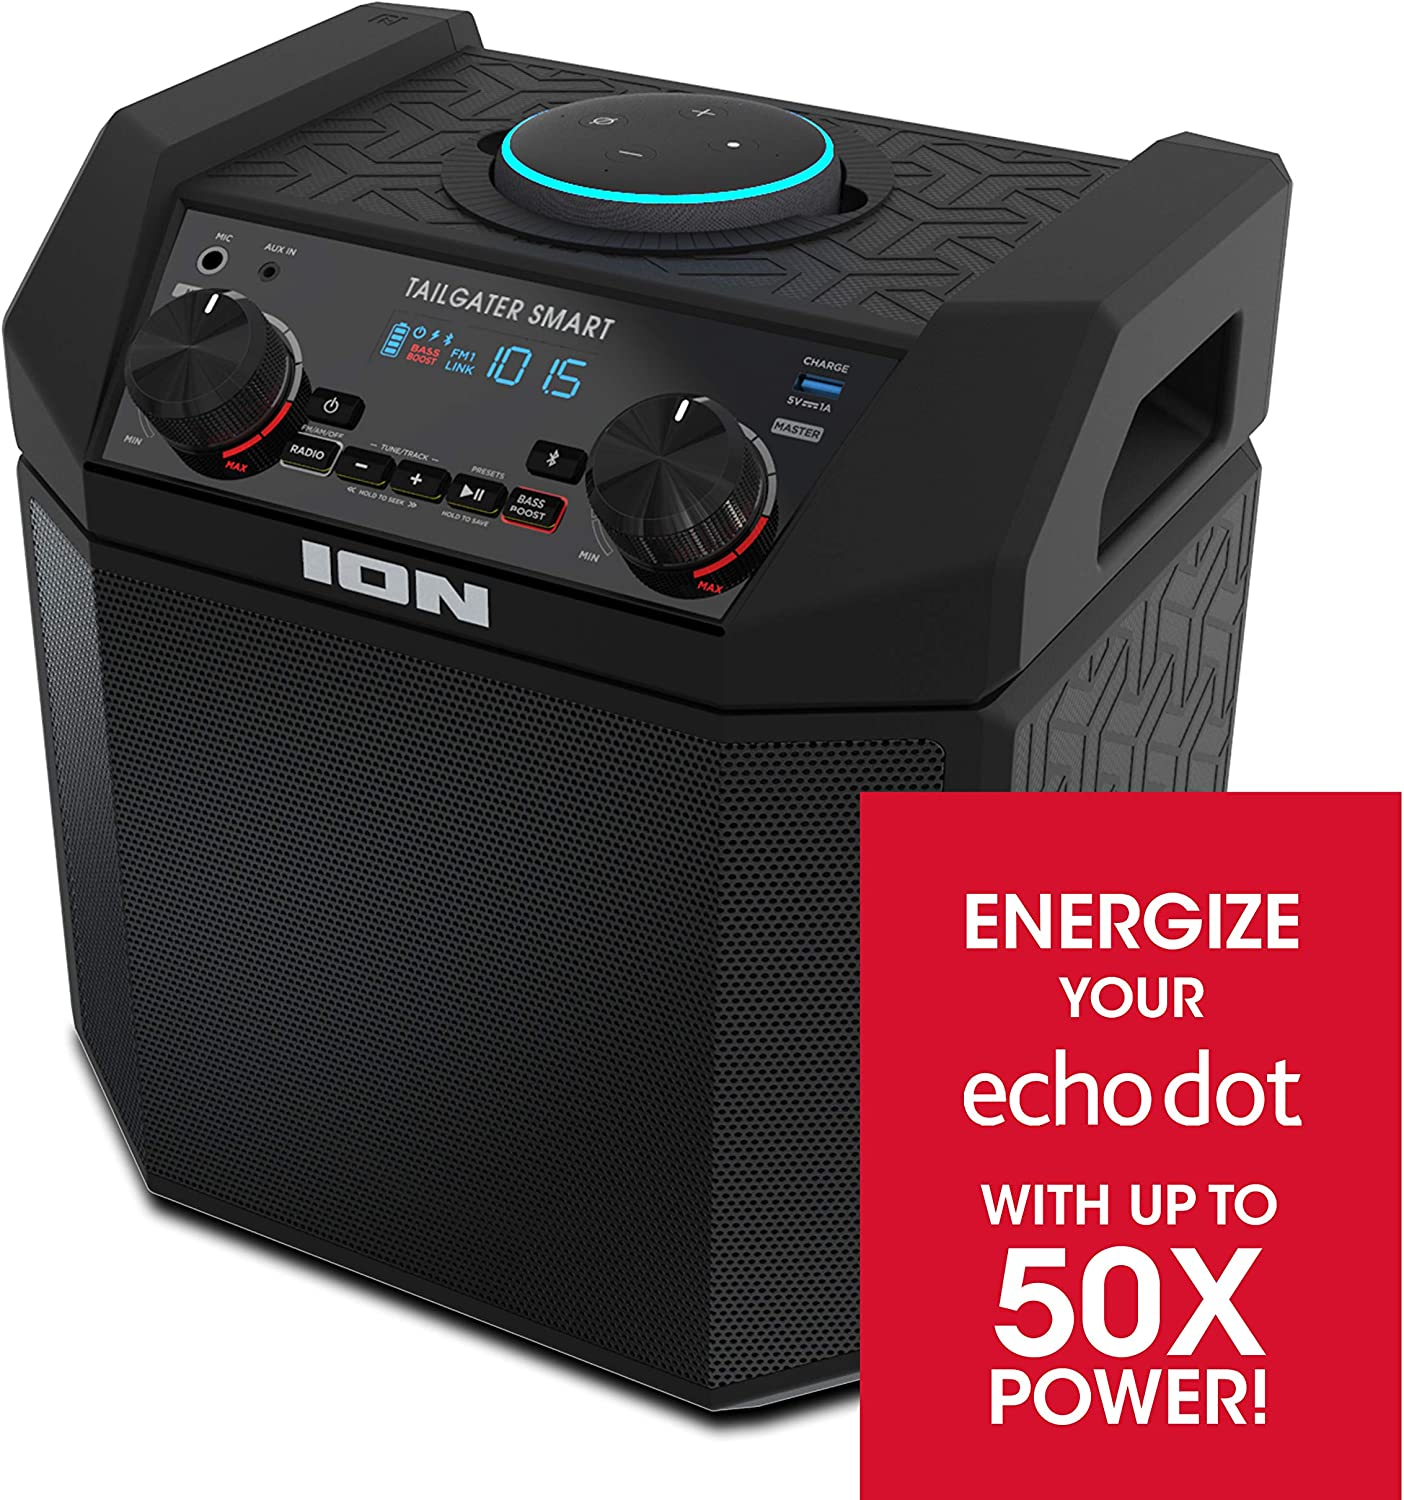 ION Audio 50W Outdoor Echo Dot Speaker Dock/Portable Alexa Accessory With Bluetooth Connectivity and 50 Hour Rechargeable Battery-Tailgater Smart